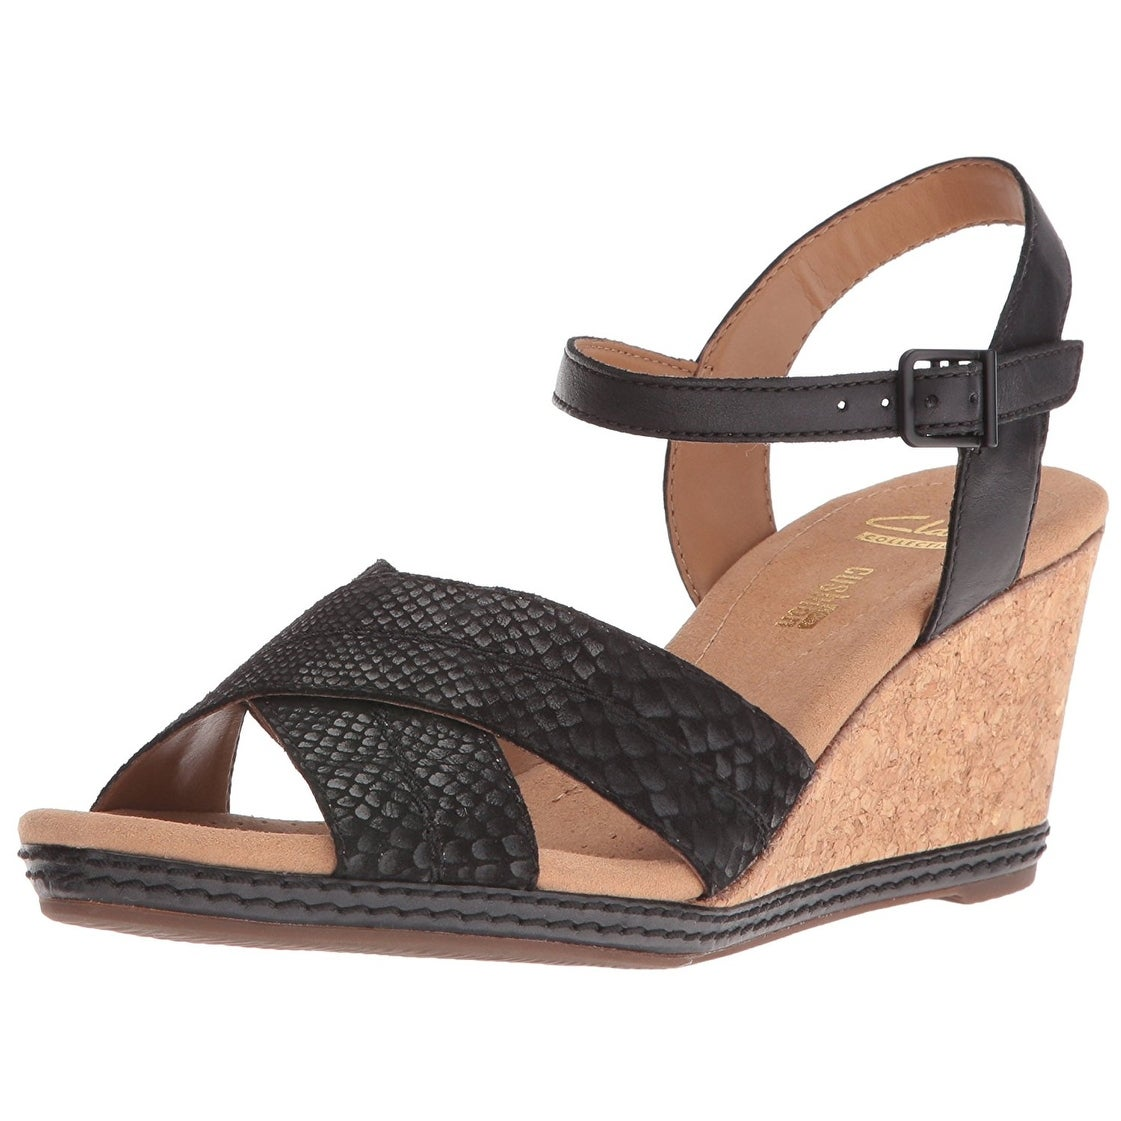 c547ed24e40 Shop Clarks Women s Helio Latitude Wedge Sandal - Free Shipping On Orders  Over  45 - Overstock - 17595098